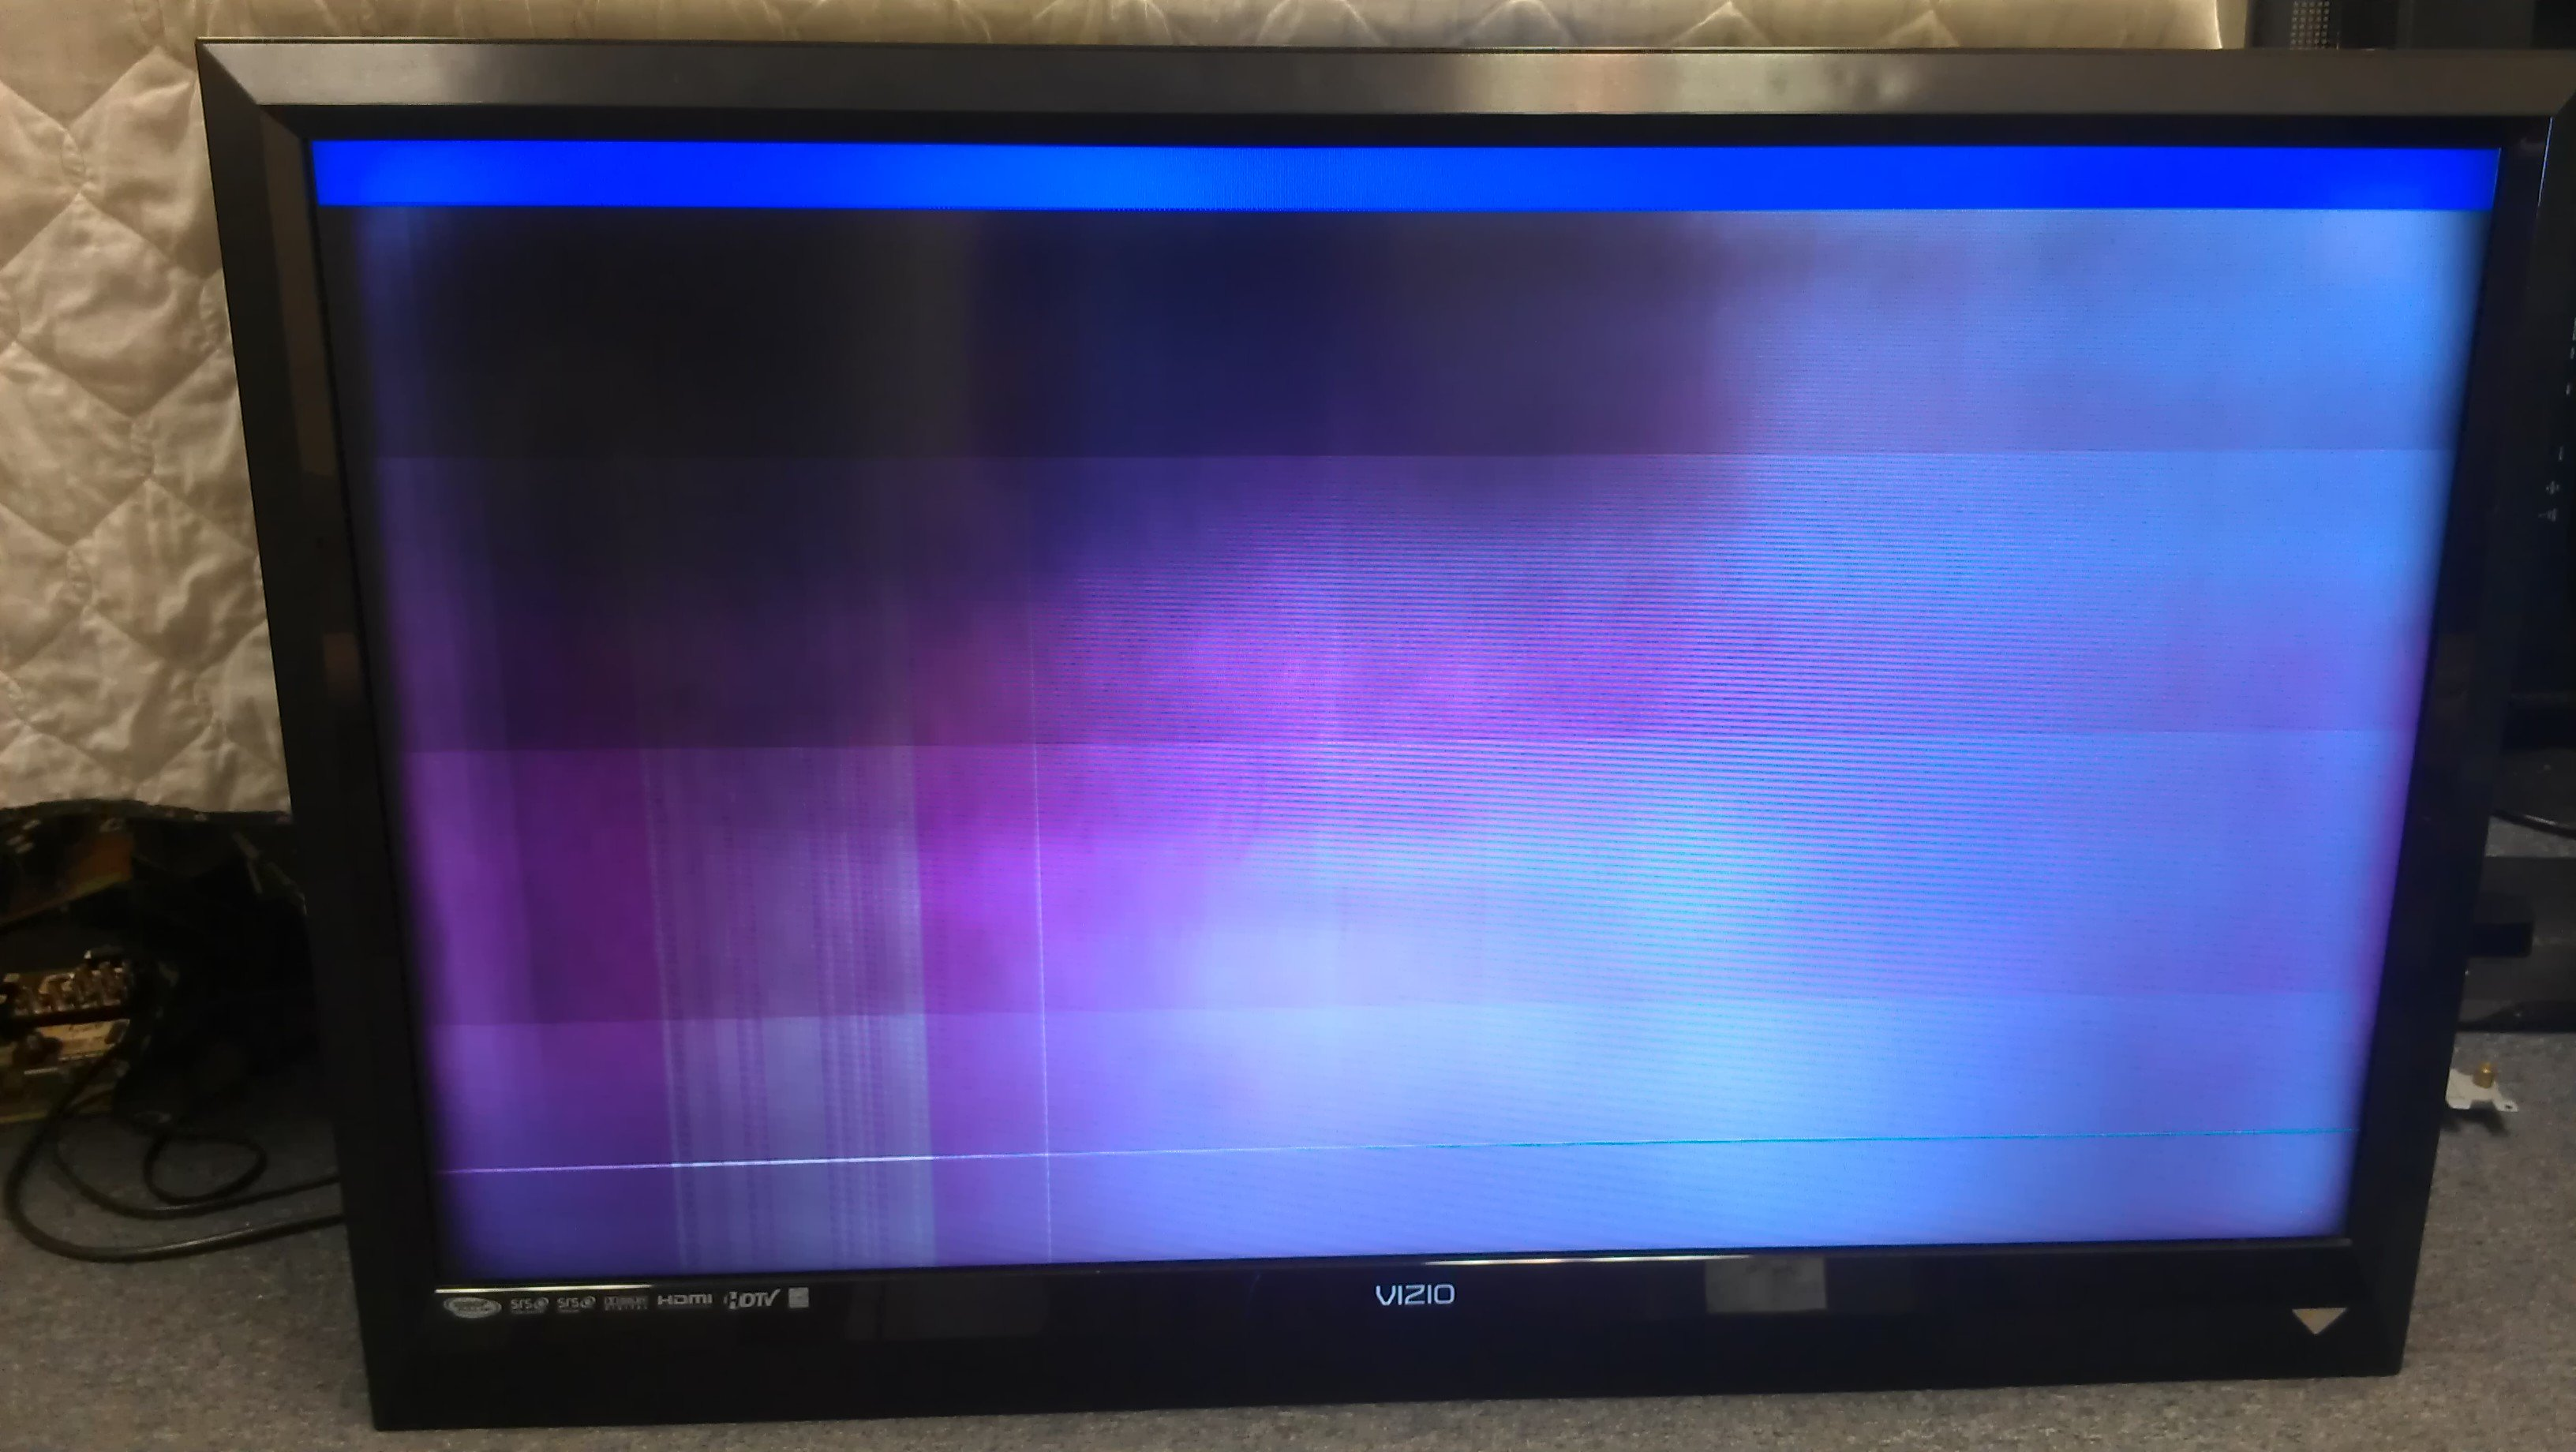 I have a VL470M that has a purple cloud when I first turn the tv on